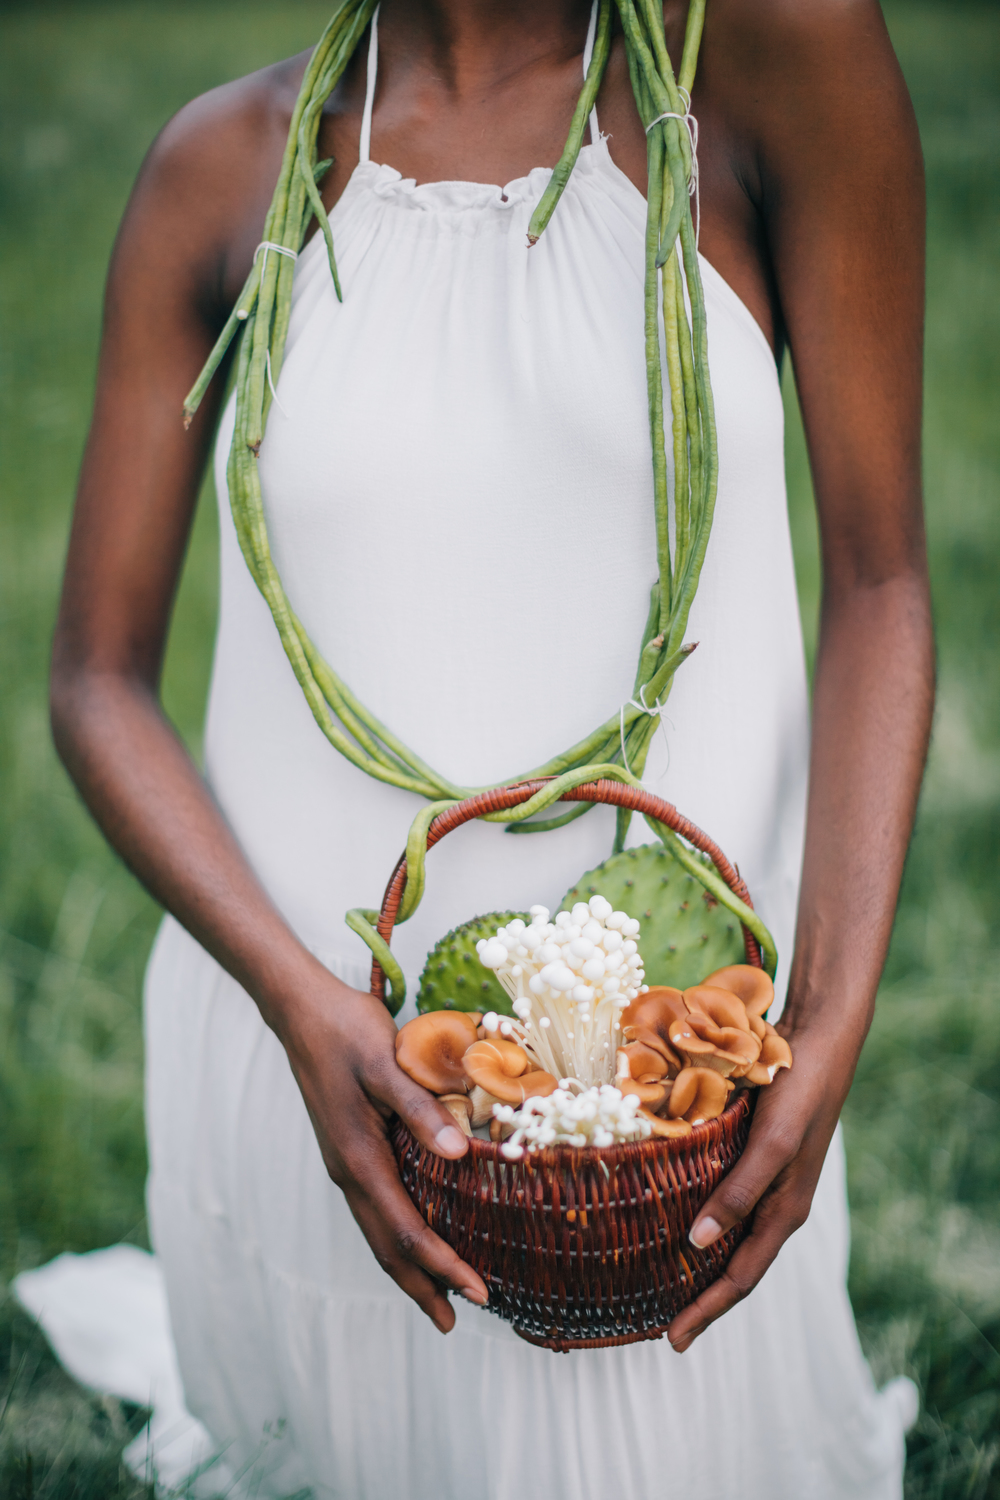 Example of infusing YOUR Style is this wedding shoot with an earthy bride. We used natural elements like mushrooms, long beans, sugar cane and cactus to make this shoot resonate with the bride's inner being. That is how far I go as a stylist to infuse my clients' style. Imagine what I can do for you! Photo @erikalaynephotos | Model @modelmebeautifully | Stylist @memkoh